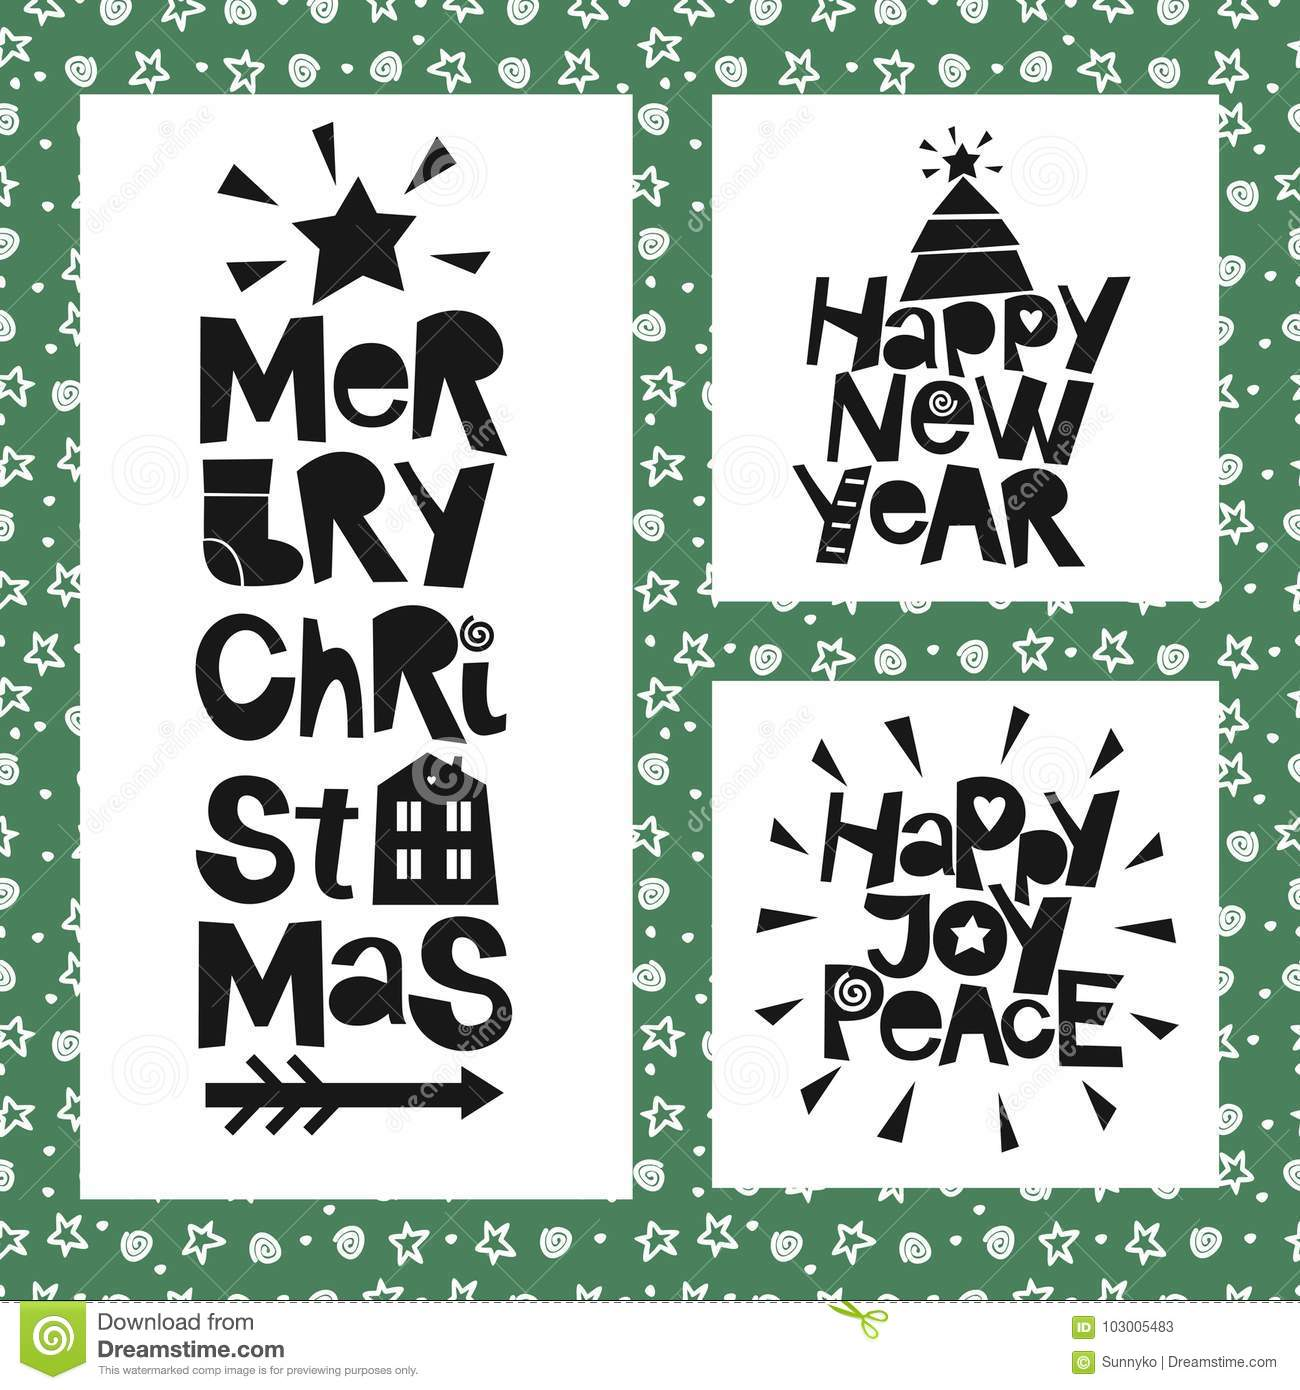 3 holiday quotes happy new year joy peace merry christmas